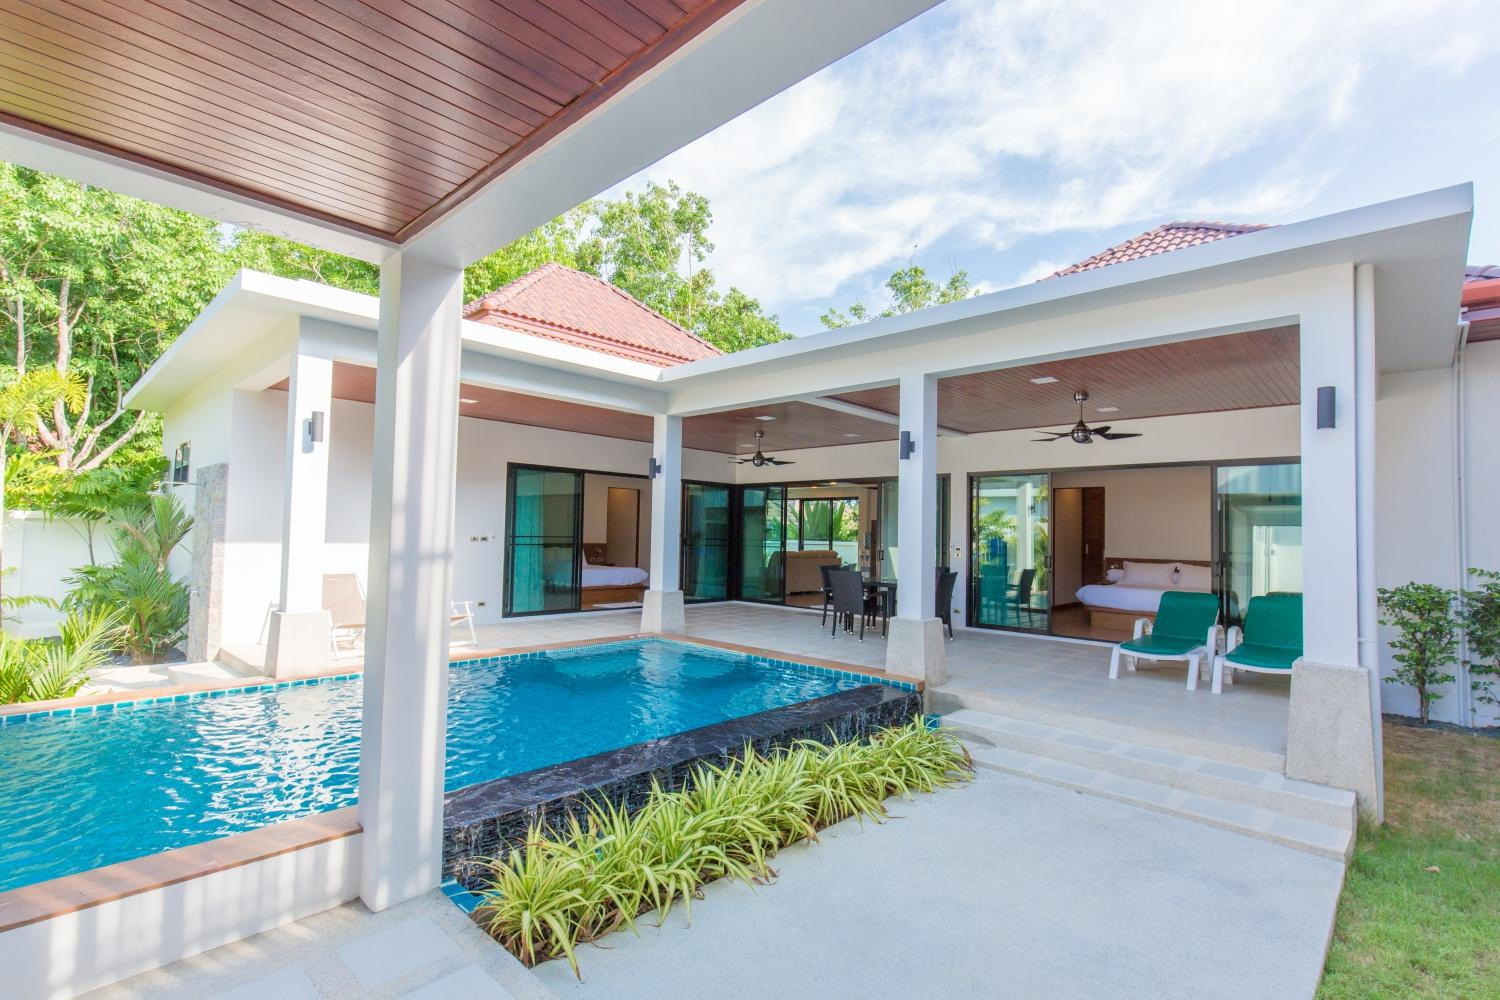 Spacious Family Villa. Calm and Bright with Pool